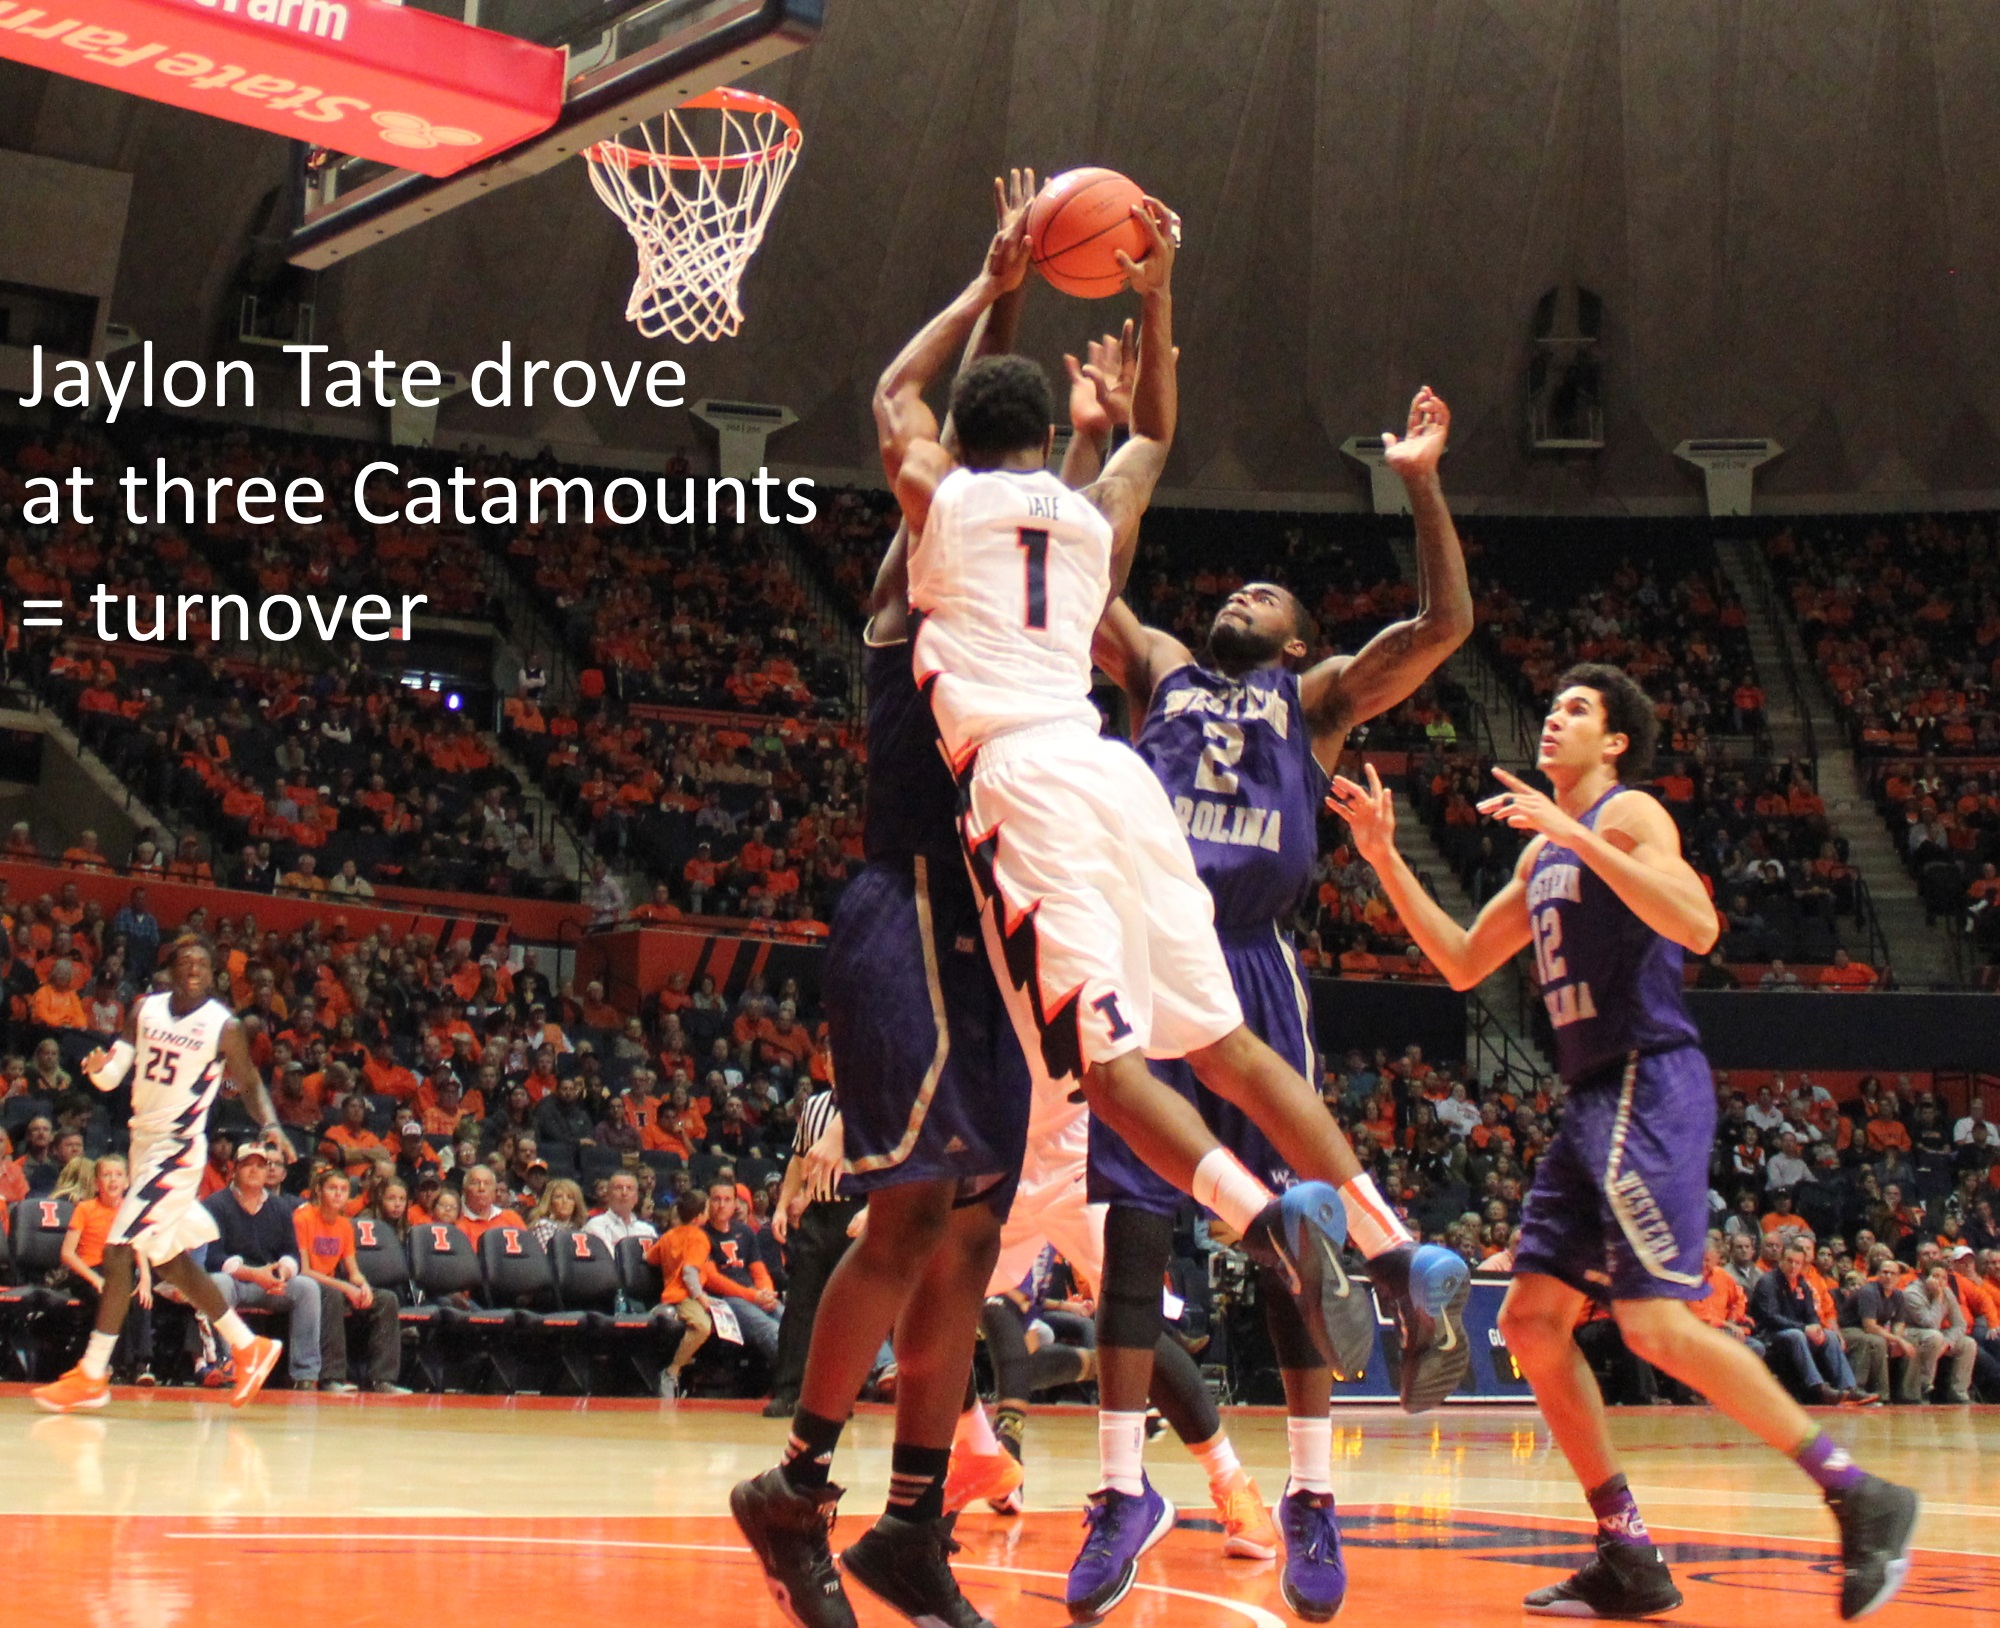 Jaylon Tate drove Catamounts turnover